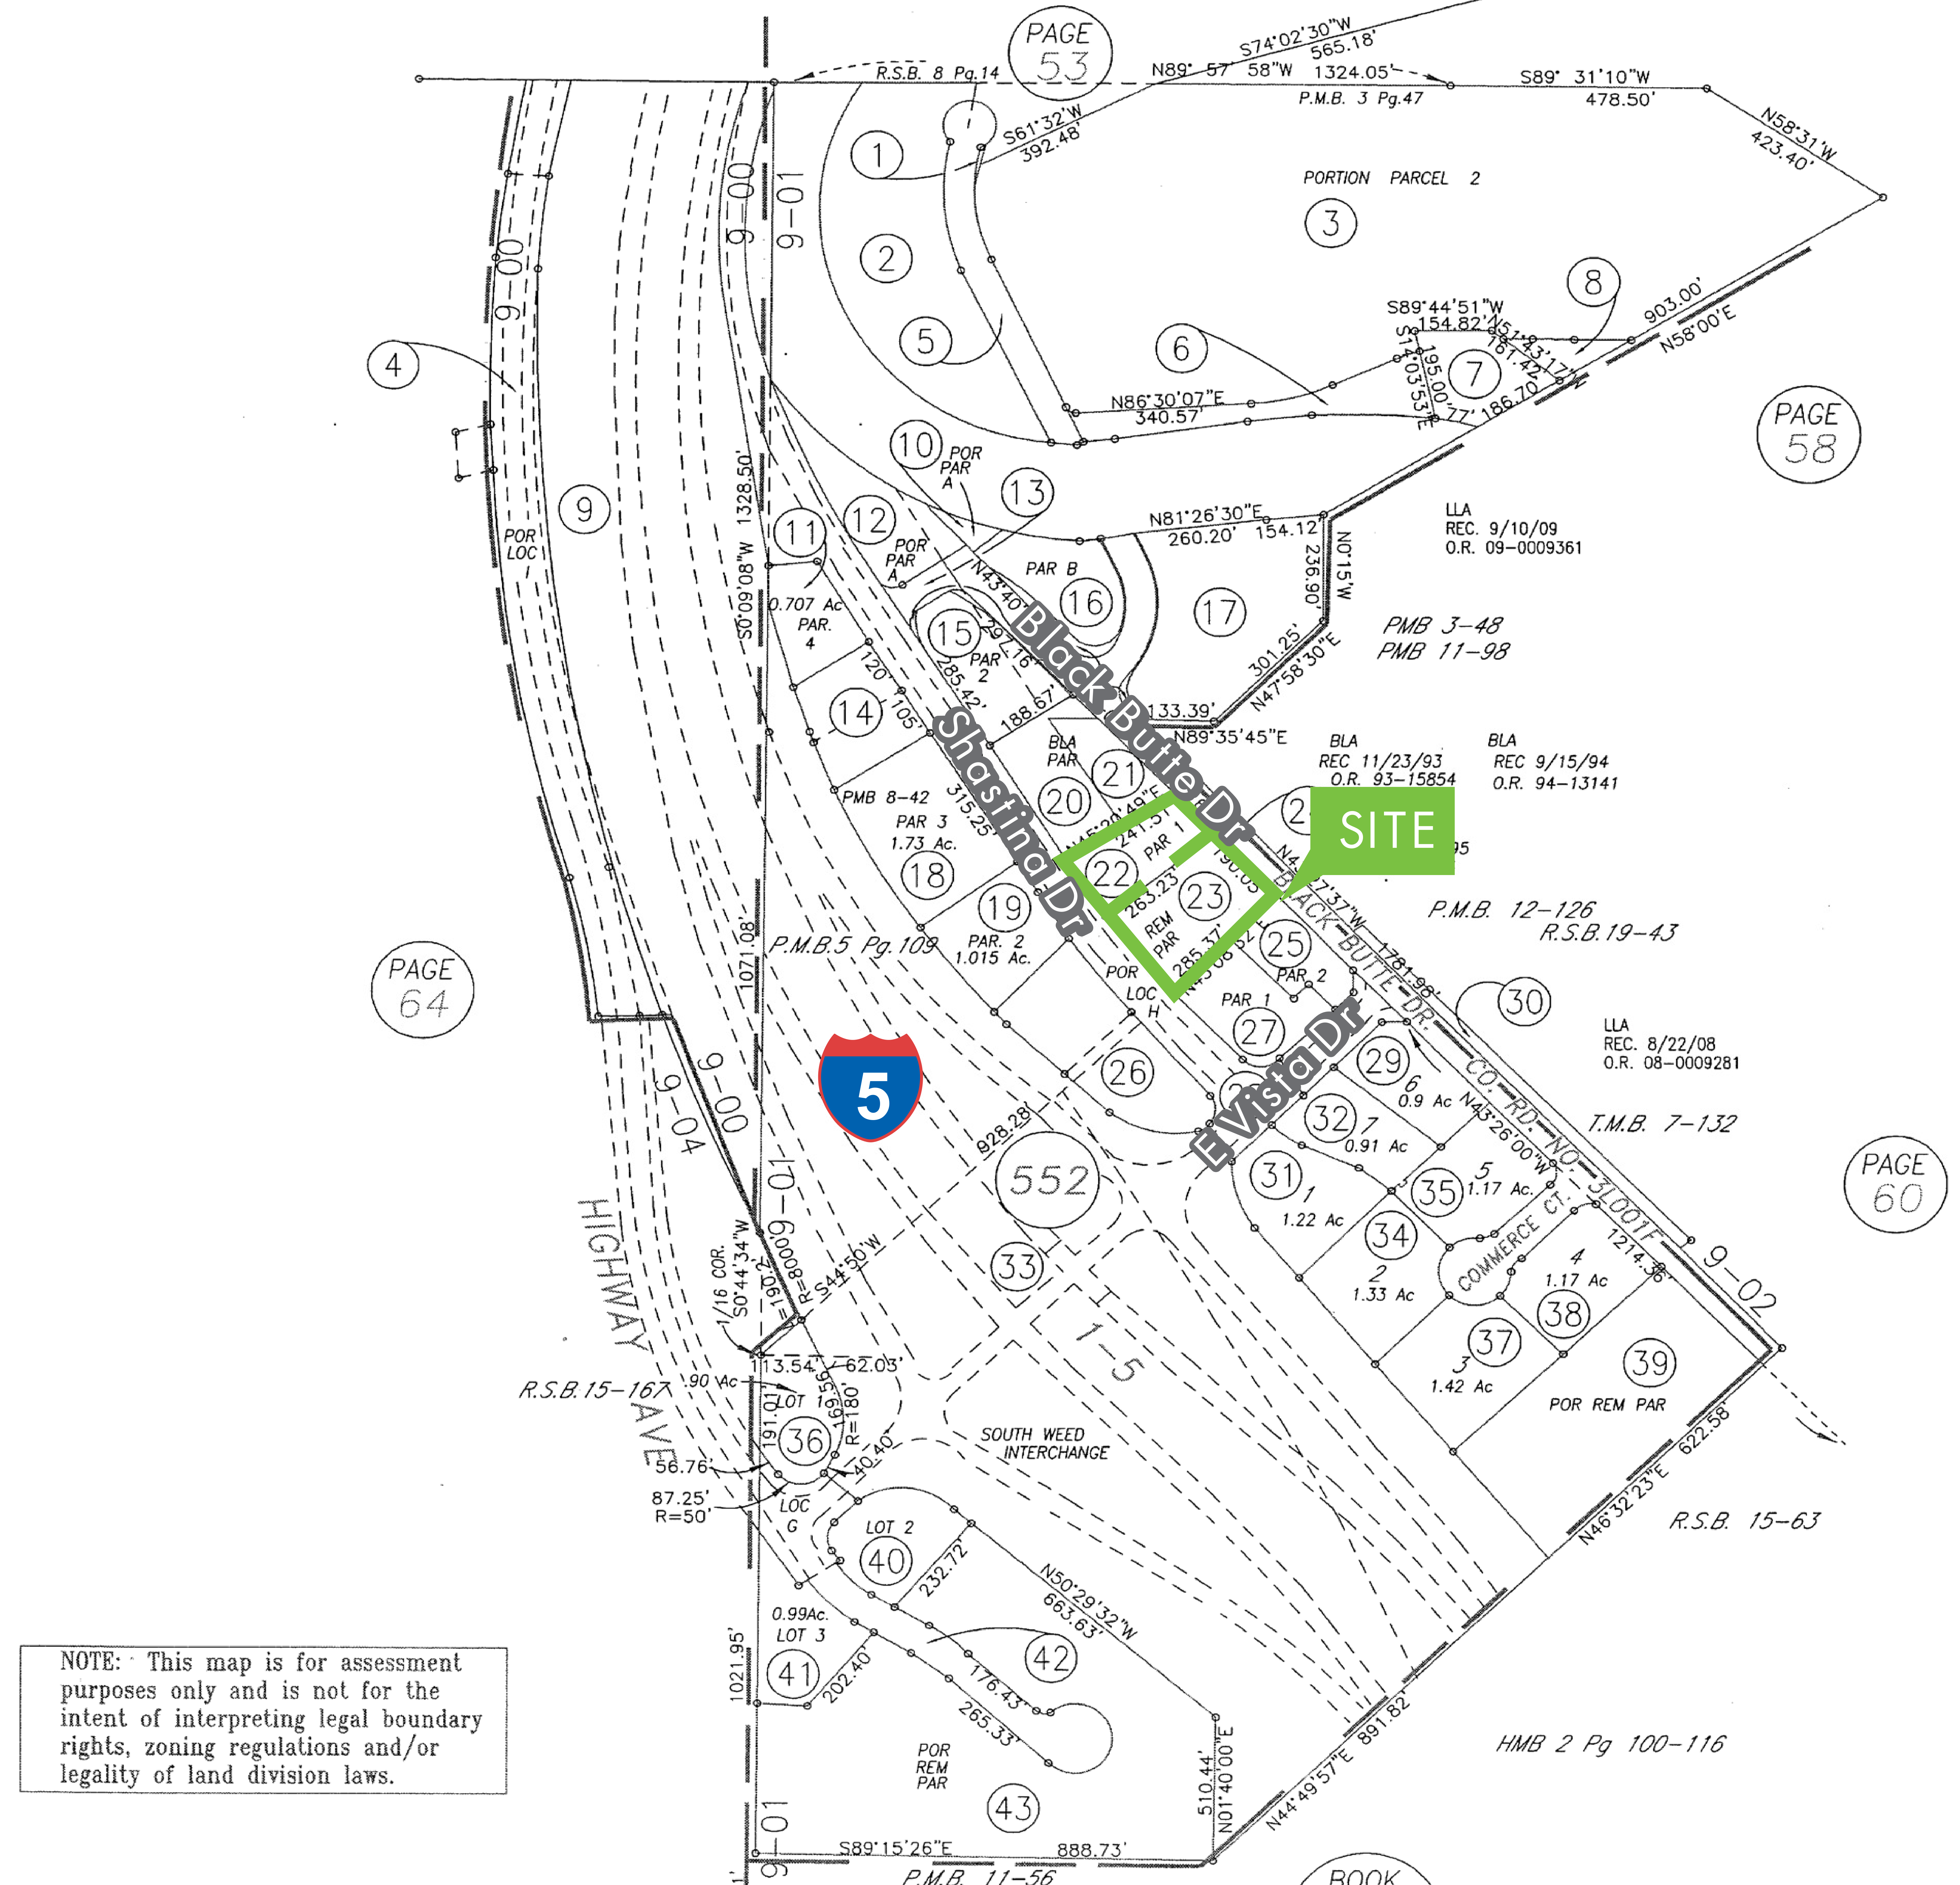 Highway Commercial Land - 1886 Shastina Drive: site plan